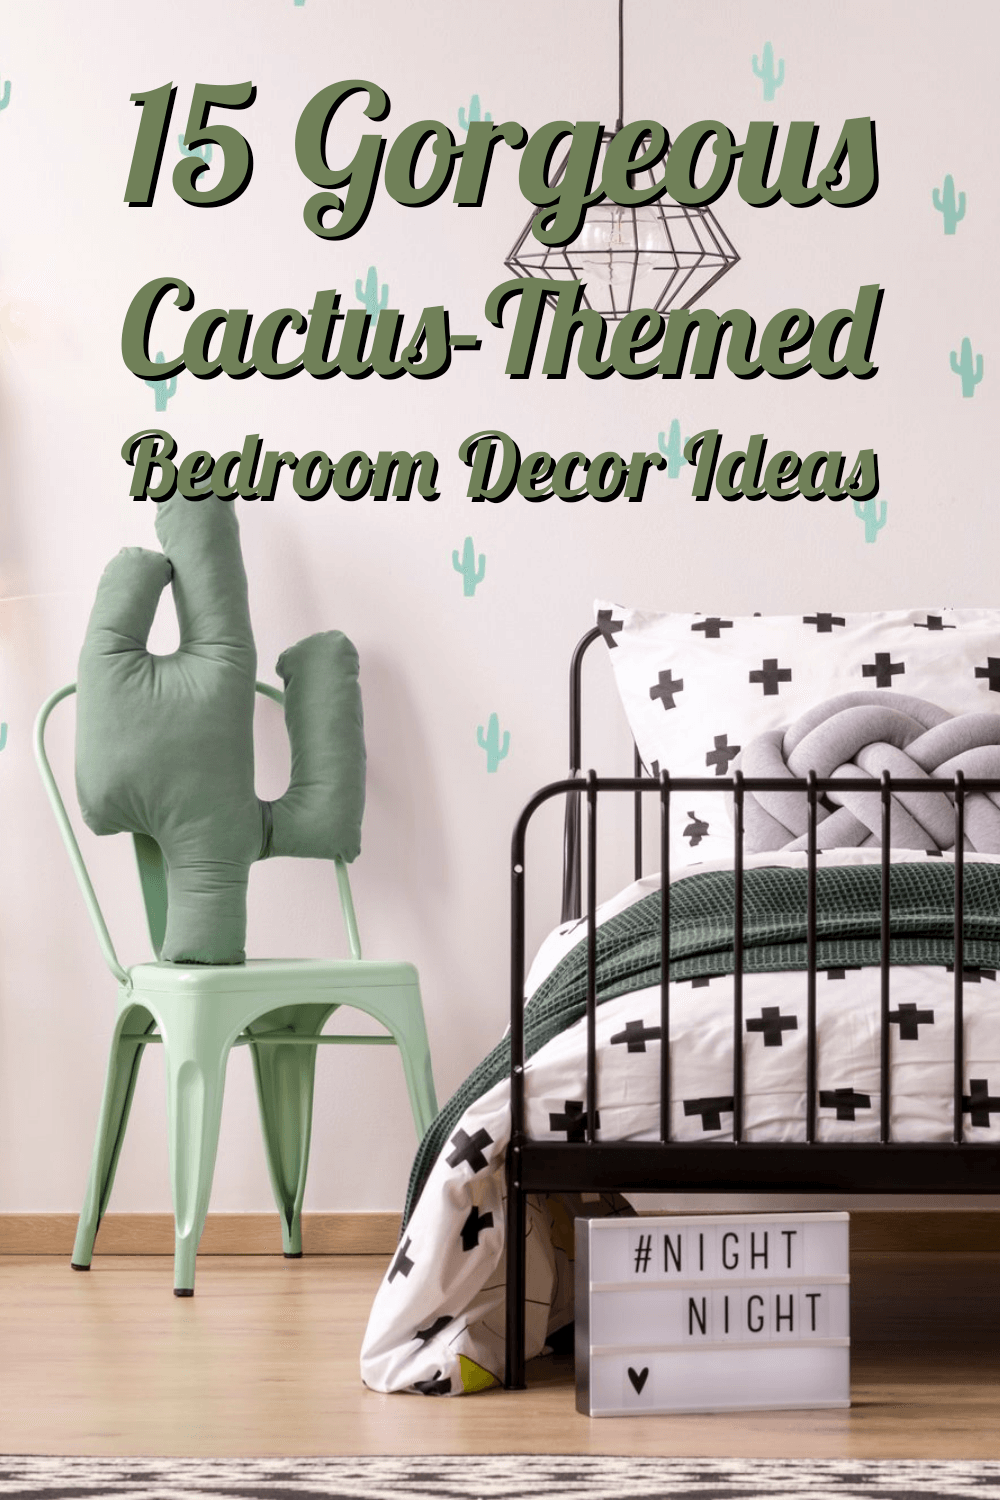 15 Georgeous Cactus Themed Bedrooms